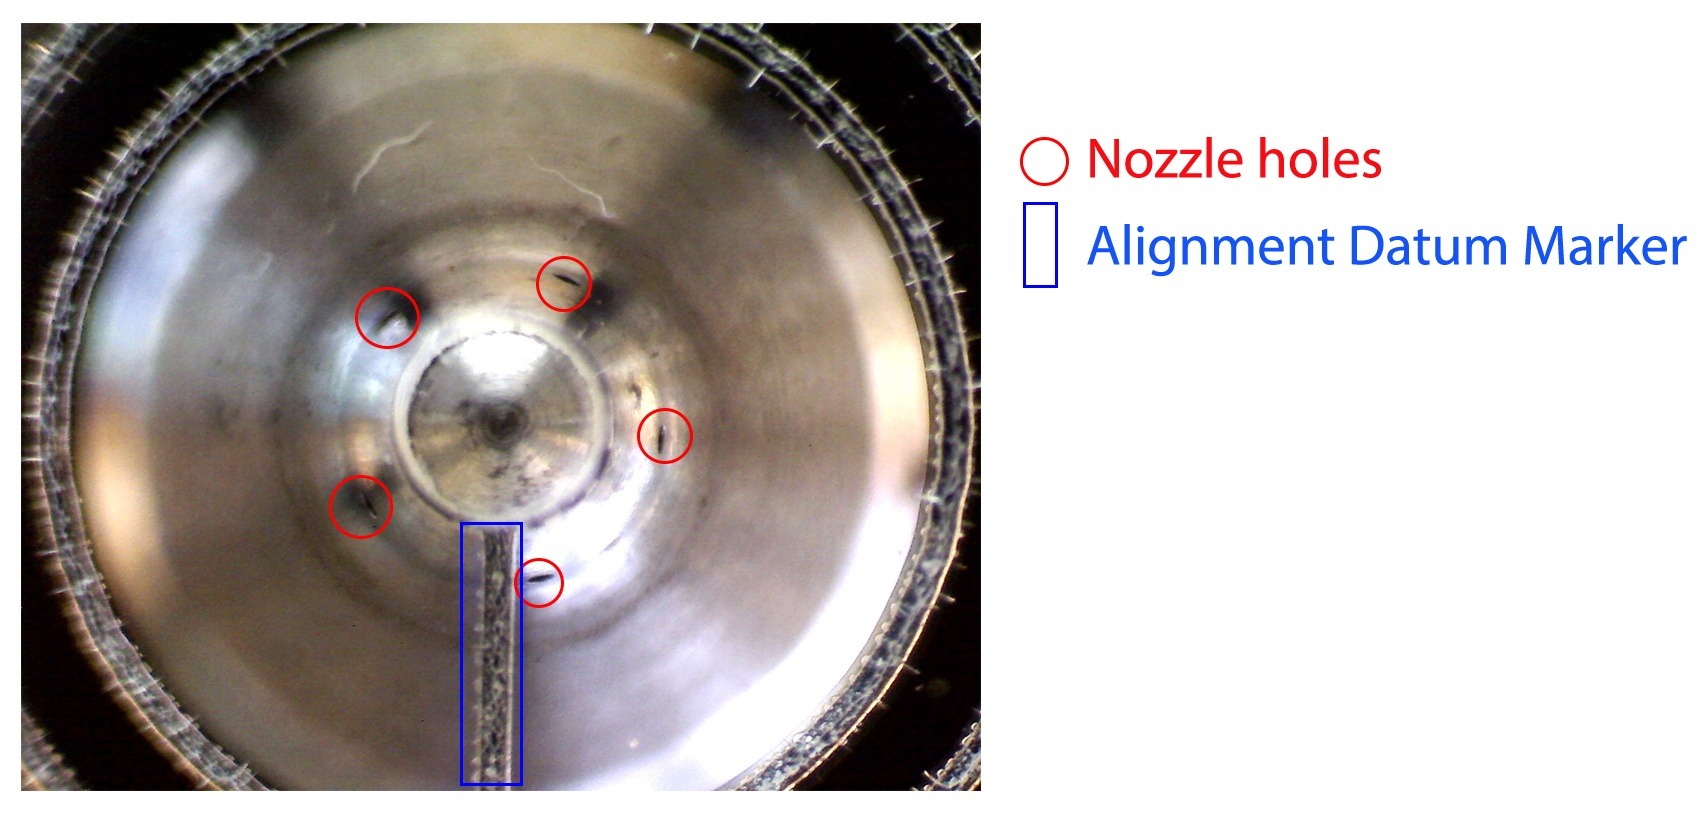 nozzle_alignment.jpg